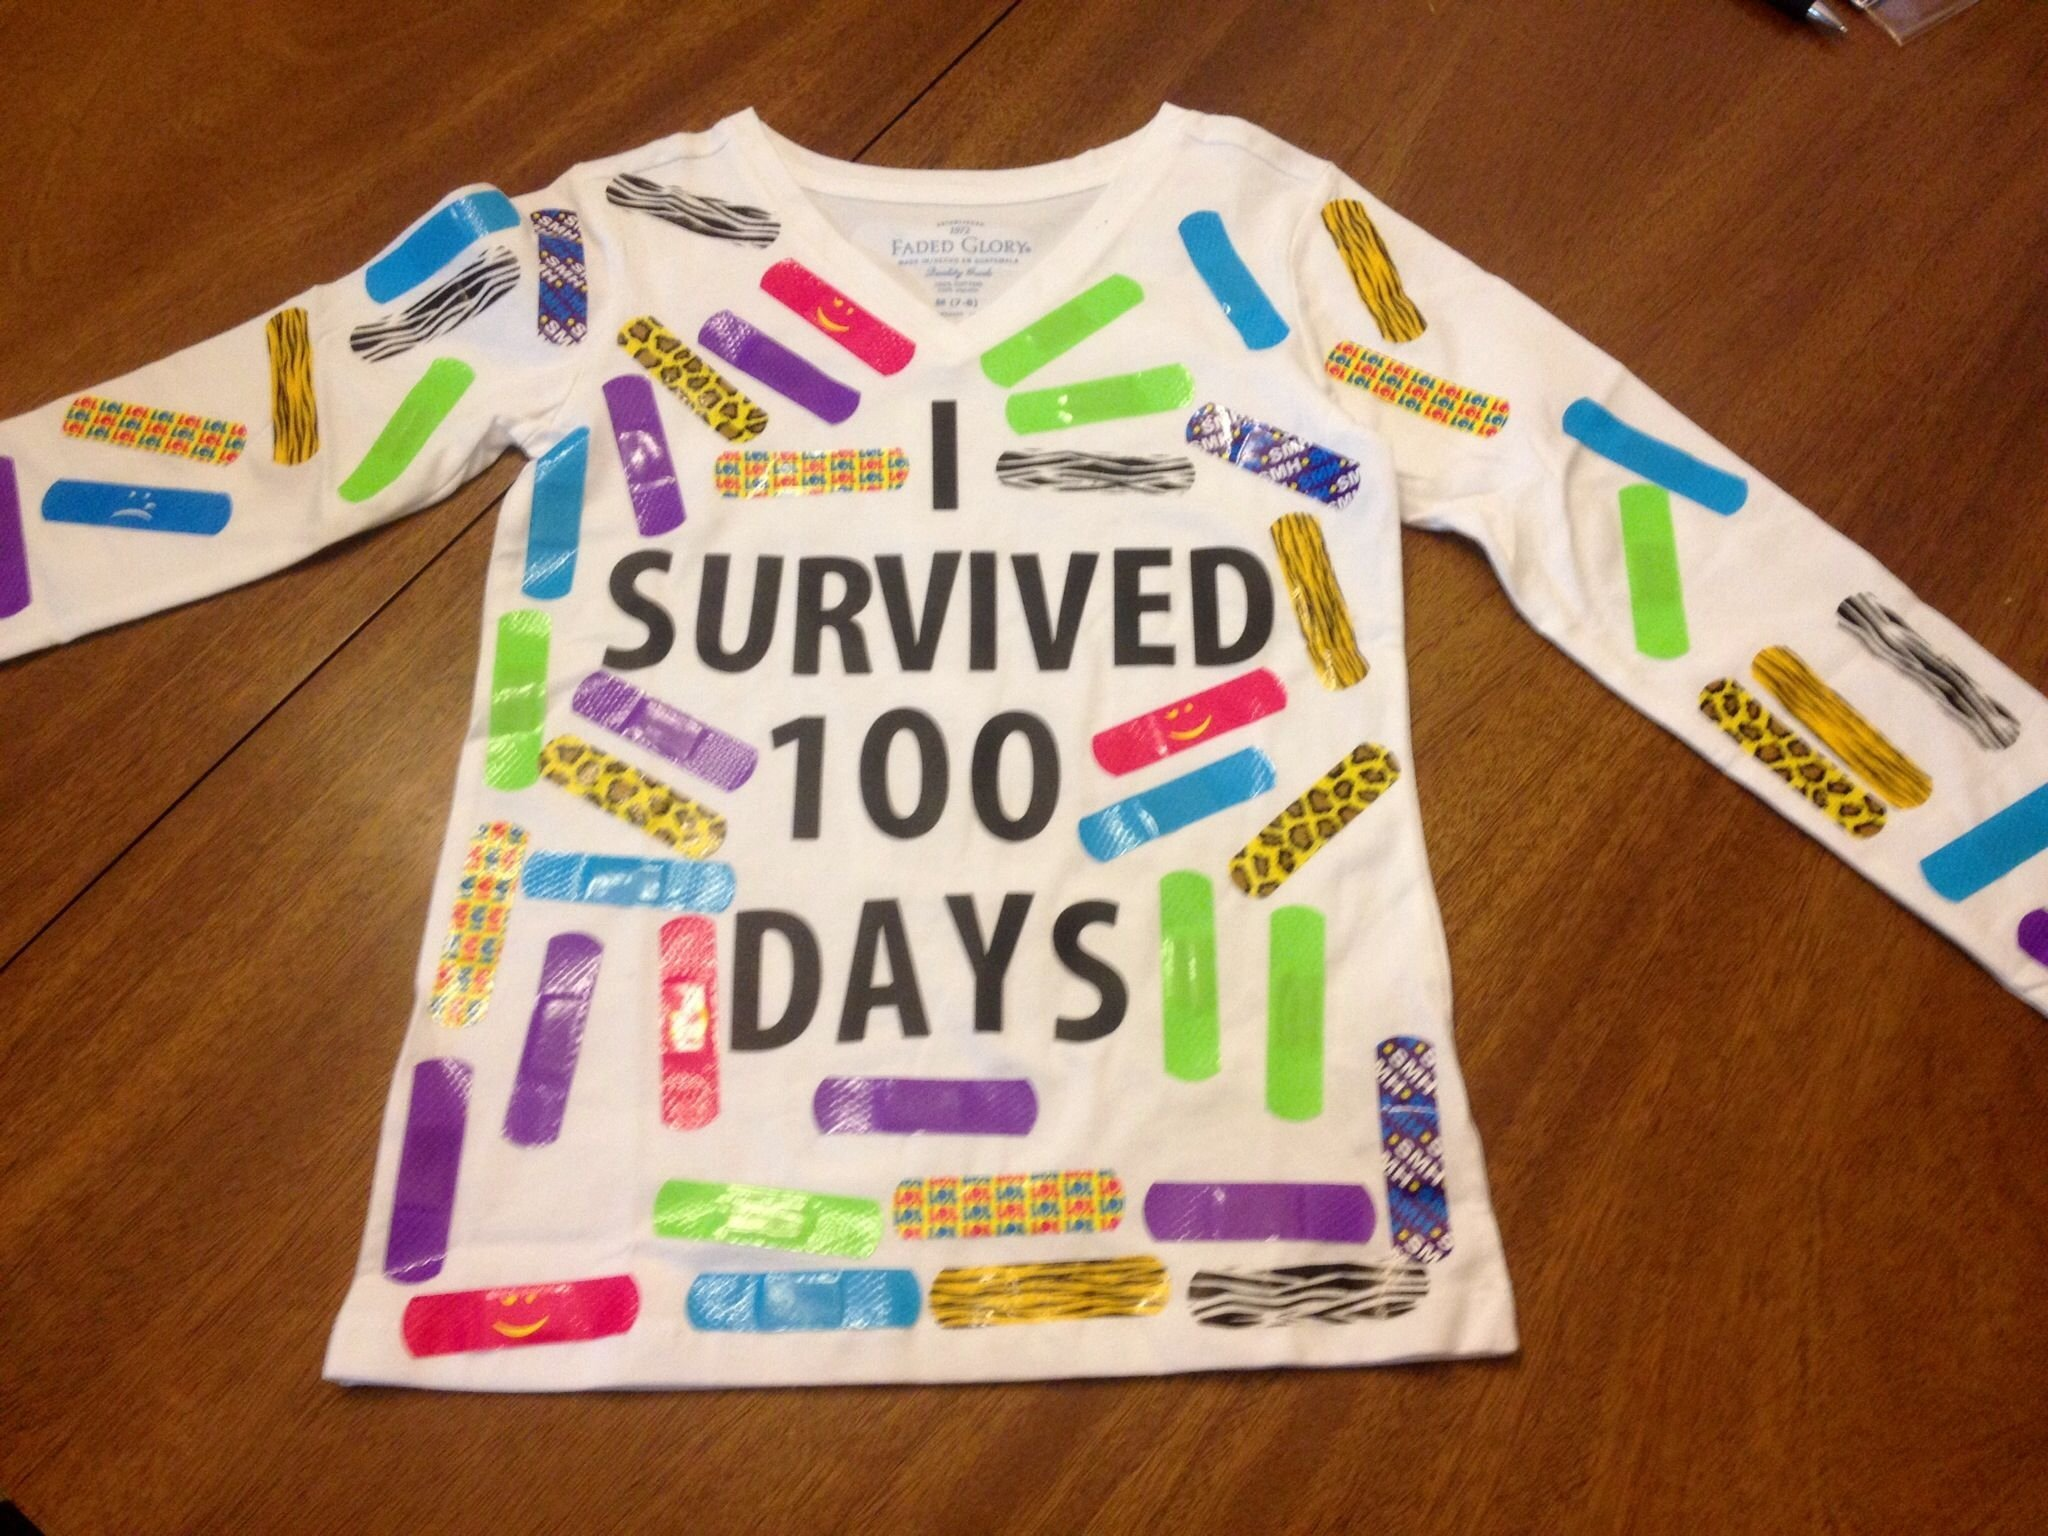 10 Ideal 100 Days Of School T Shirt Ideas 100 days of school tshirt with 100 colorful band aids used vinyl 4